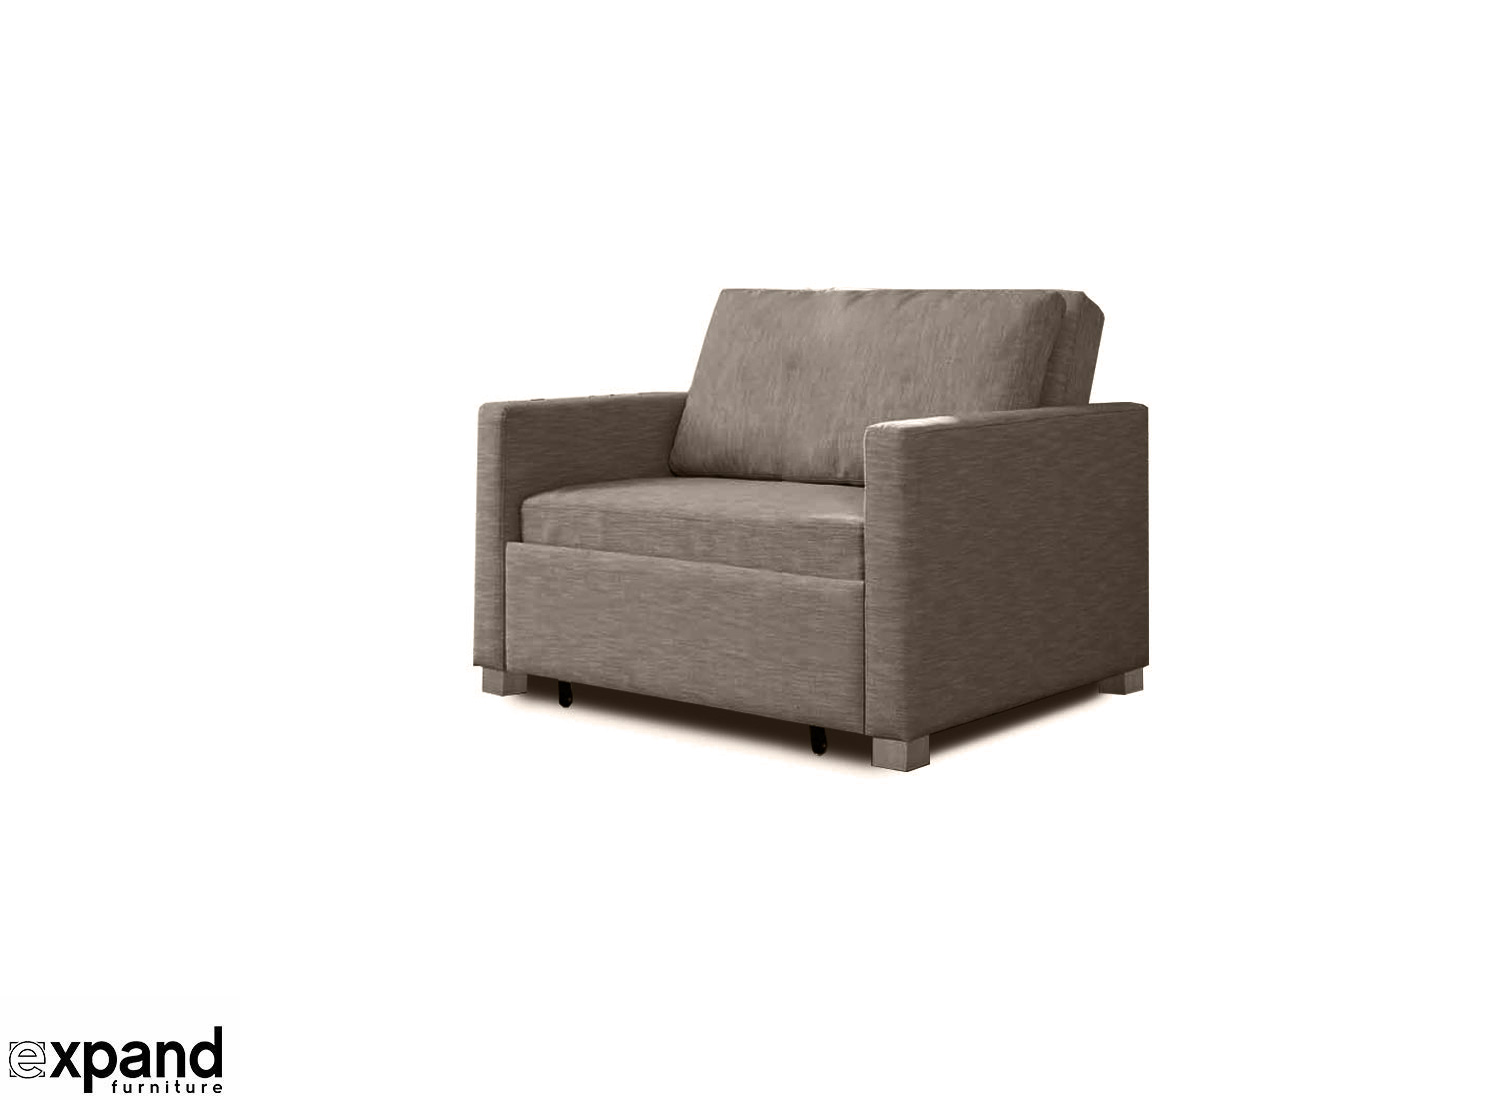 couch singles Browse ikea's range of versatile and comfortable sleeper sofas and futons in different styles and fabrics to match your space.